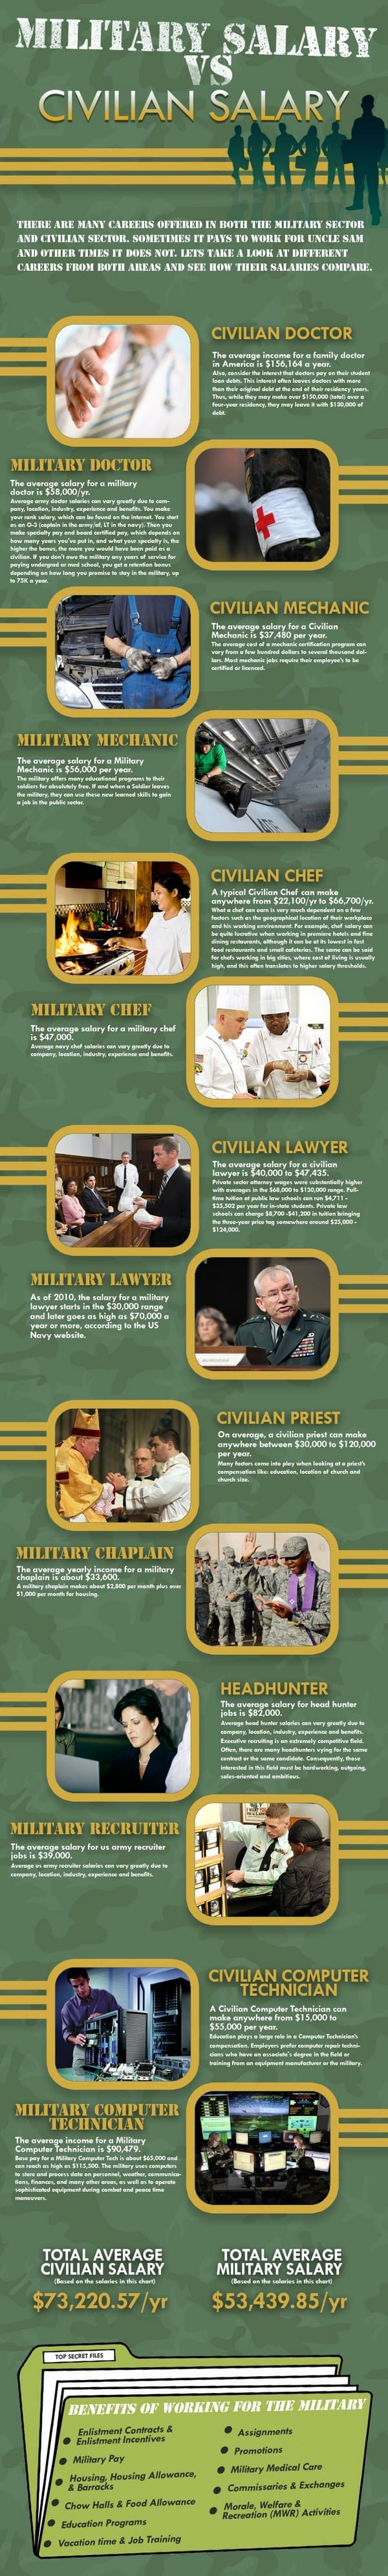 Military vs Civilian Salaries Infographic